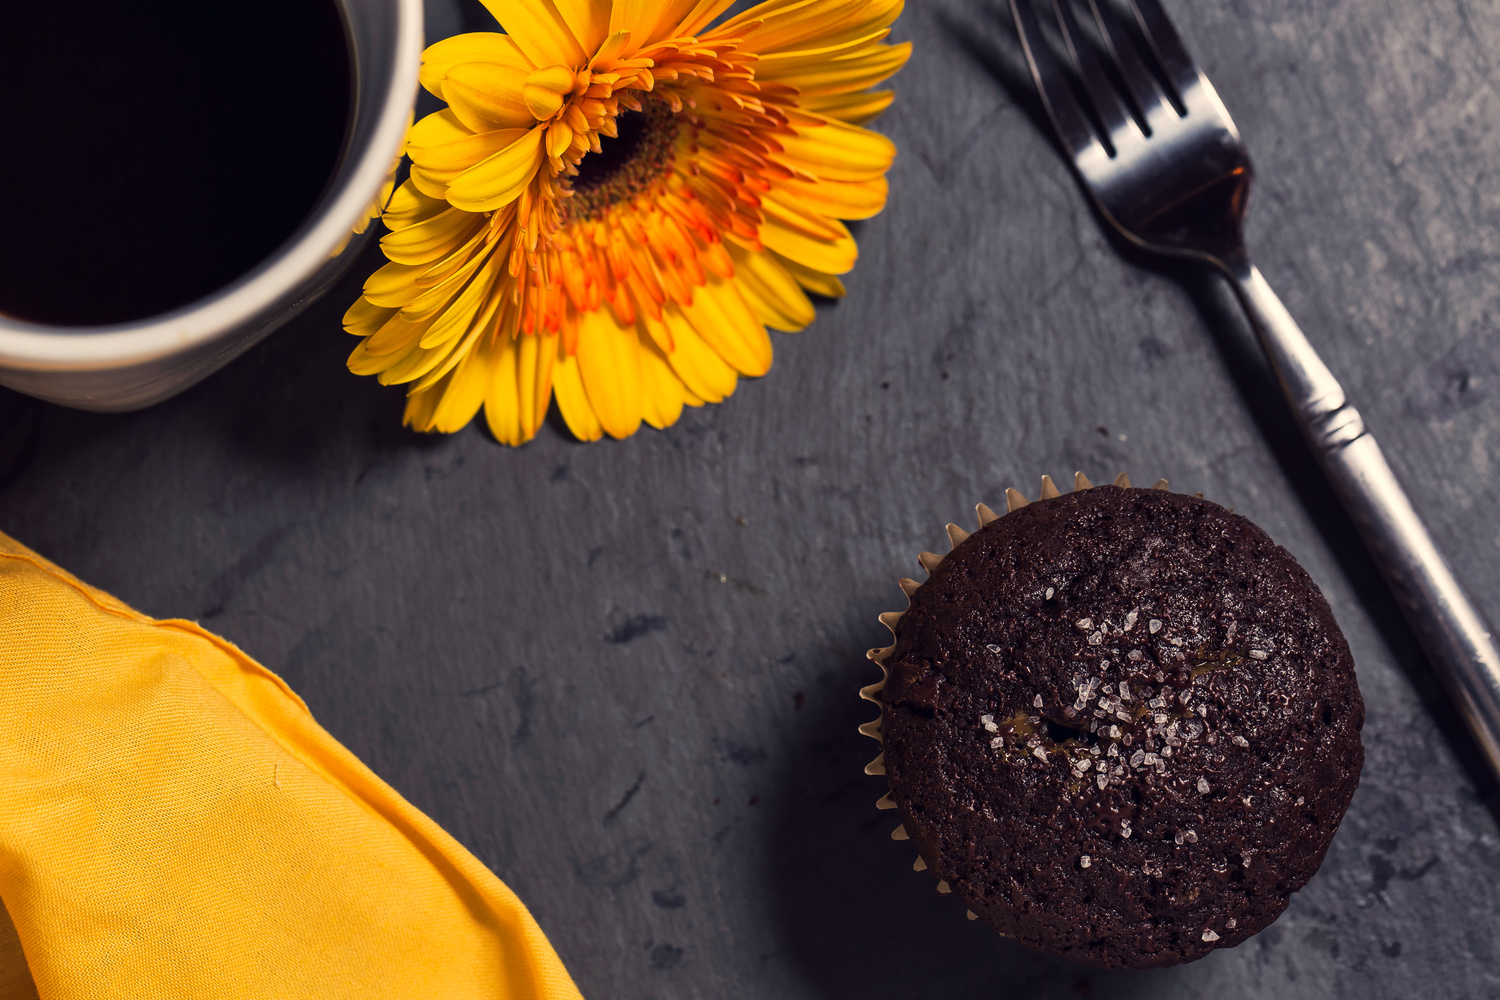 Double chocolate salted caramel muffins  by Thomas Galante